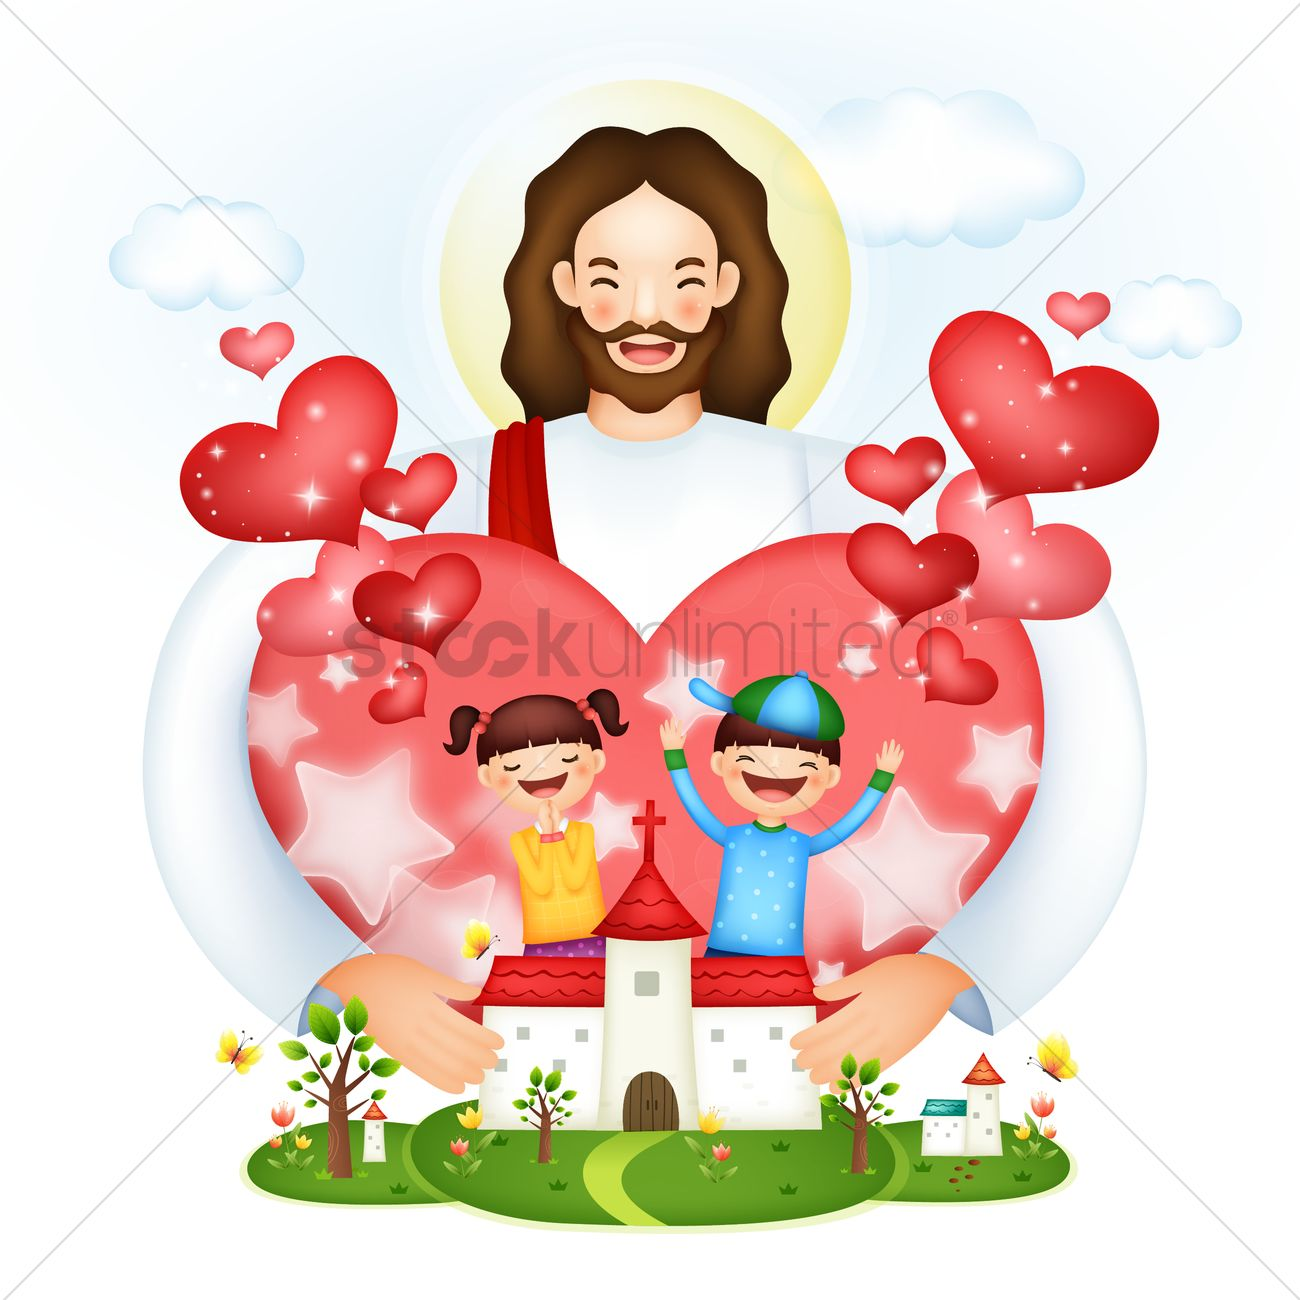 jesus love vector image 1492695 stockunlimited African American Woman Praying Clip Art muslim boy praying clipart